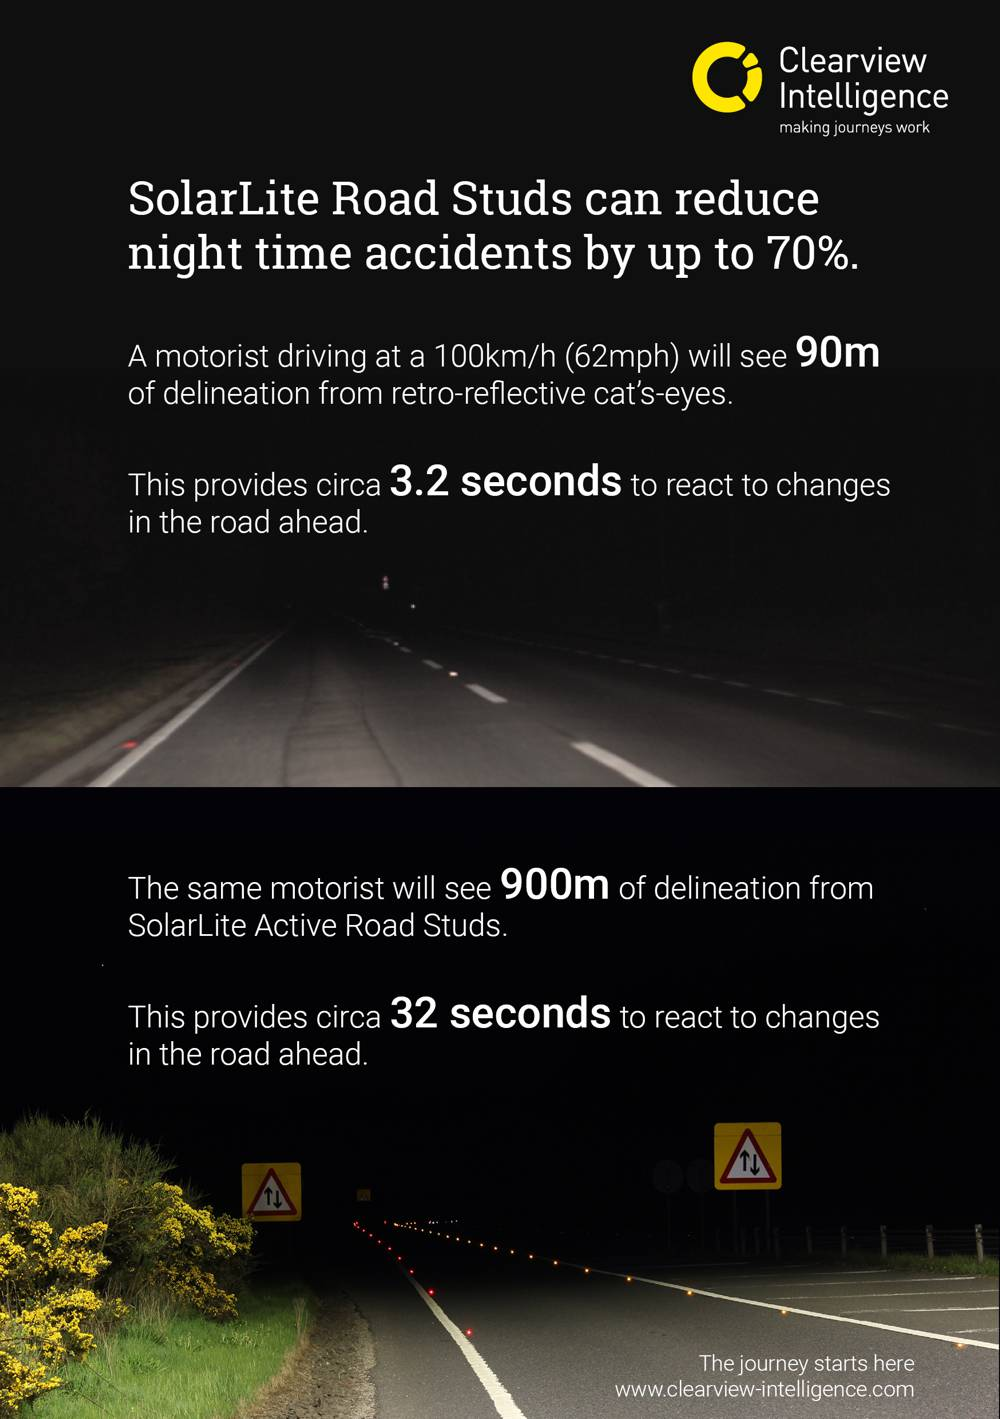 Driving in the dark: how targeting night-time road safety can make a big difference to the total number of fatal accidents